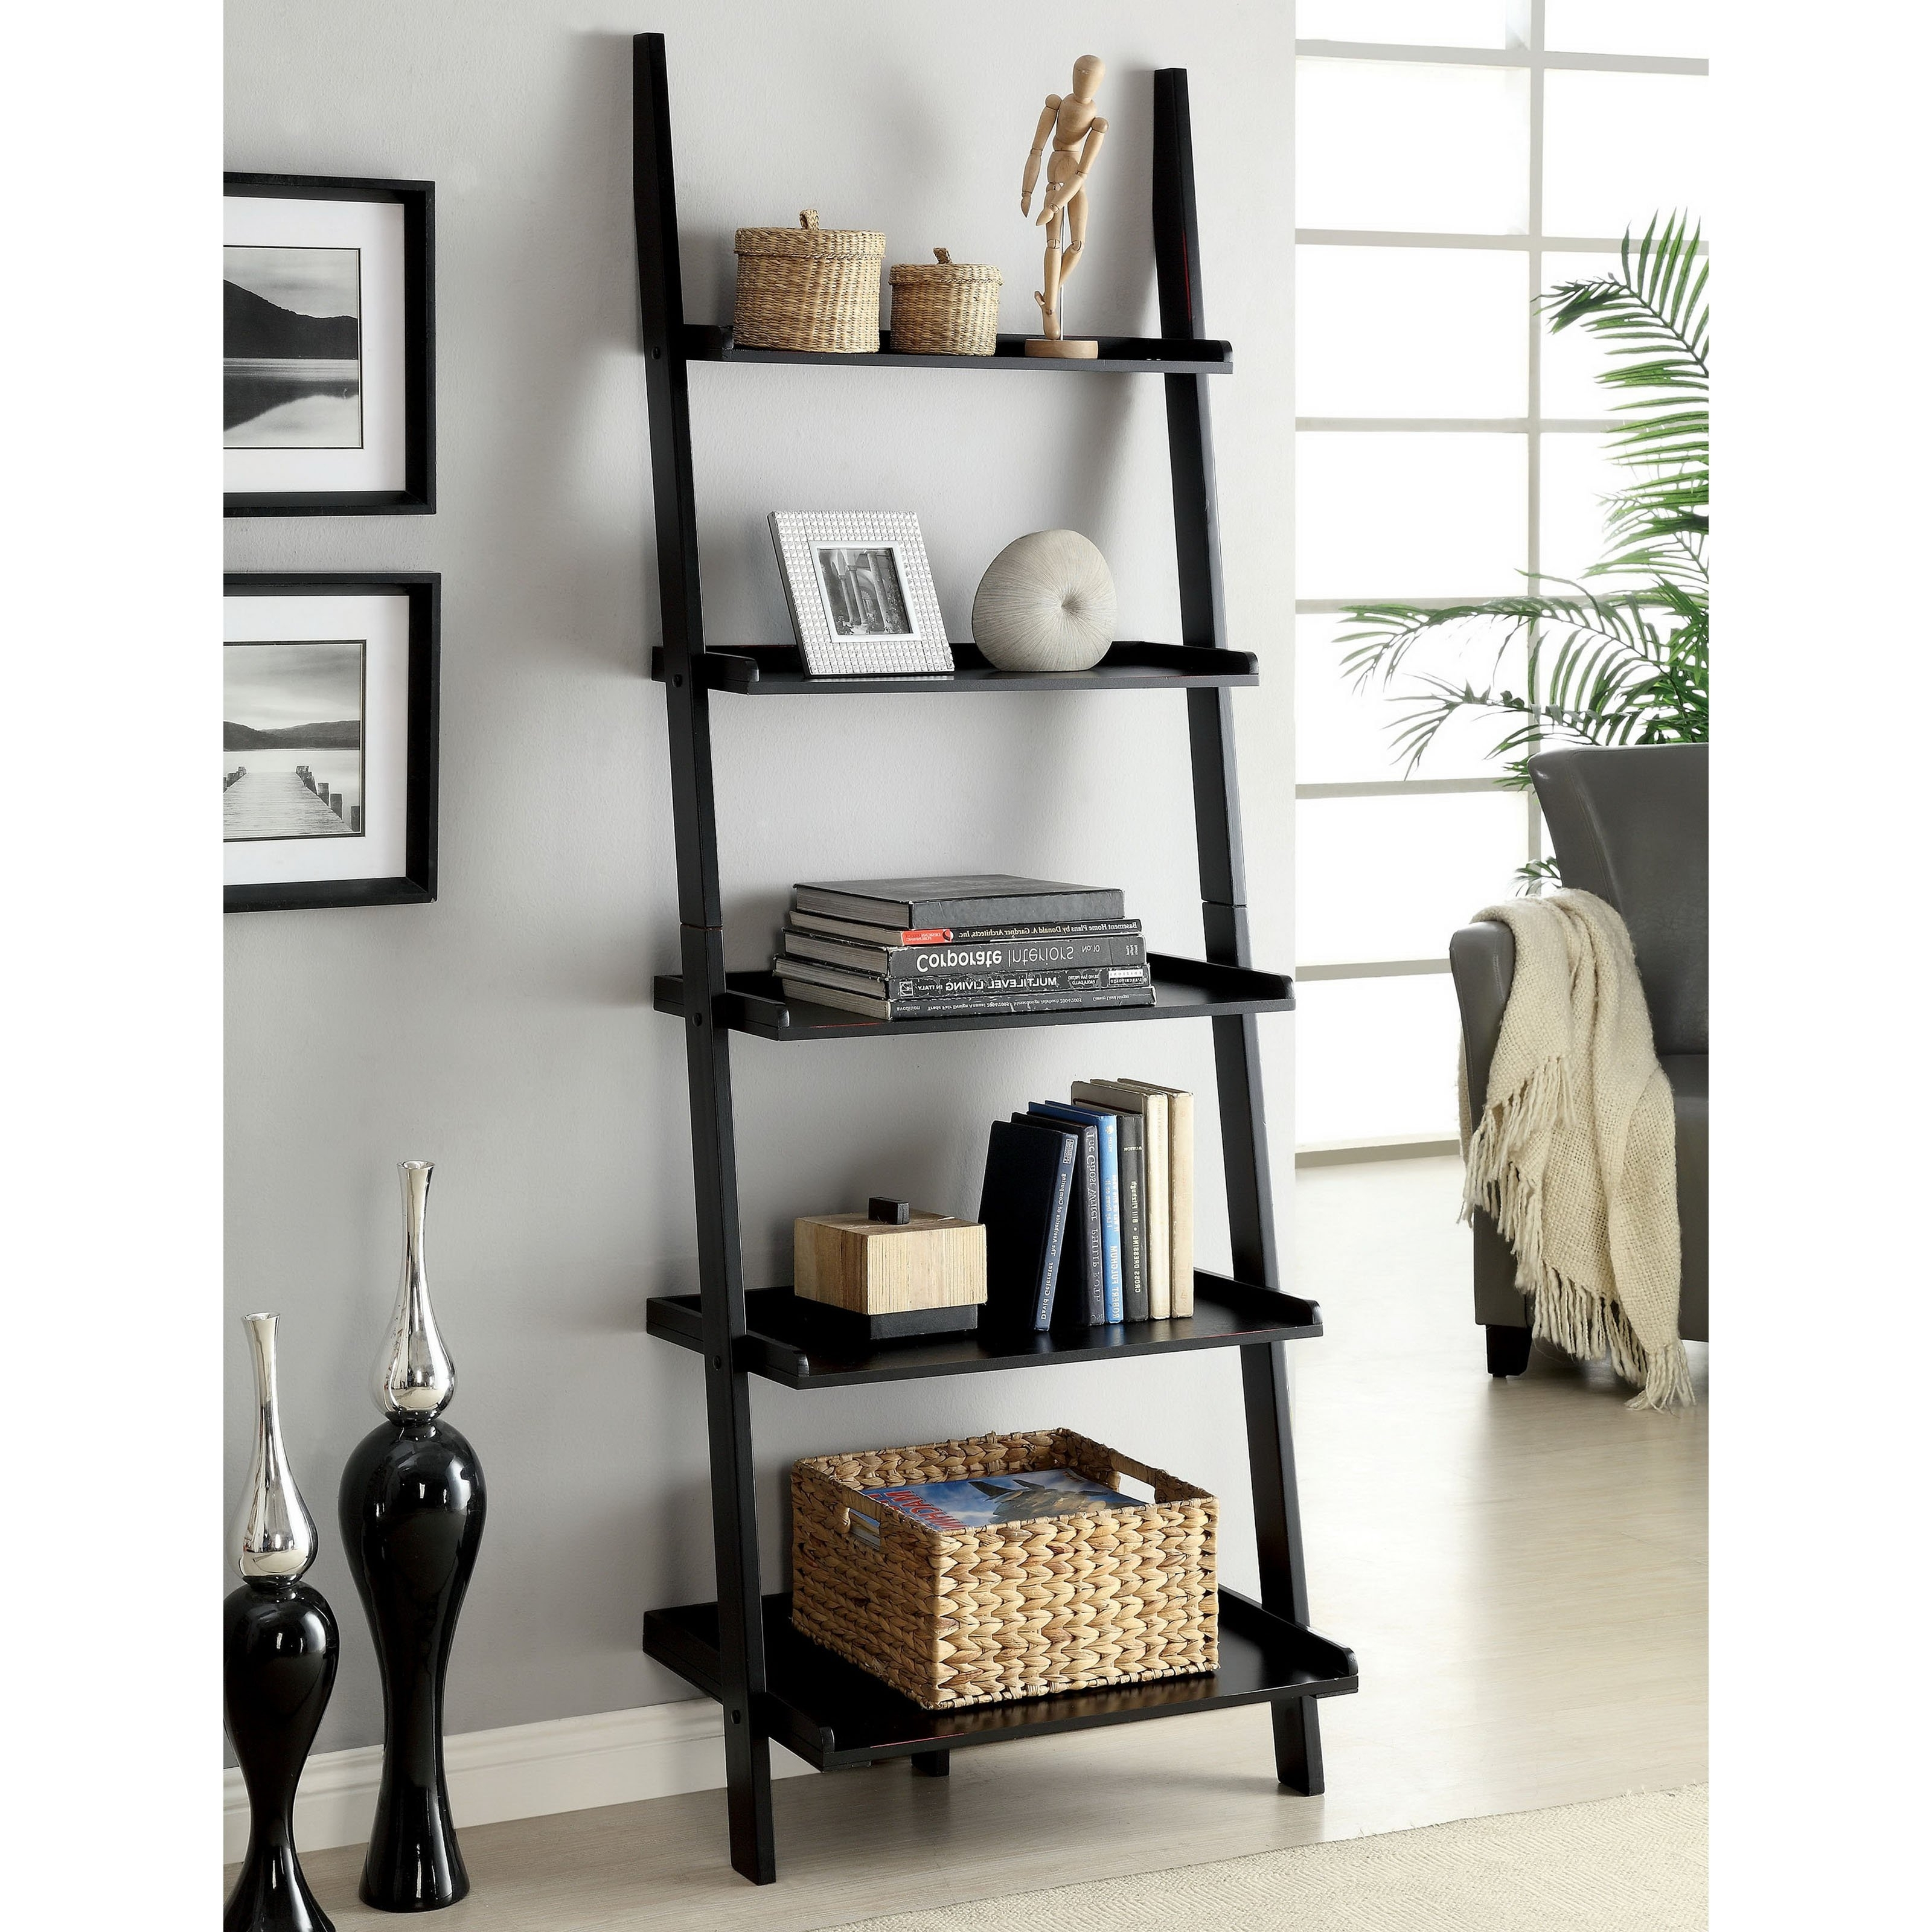 Leaning Shelf Bookcases Within Preferred Bookshelf (View 14 of 15)